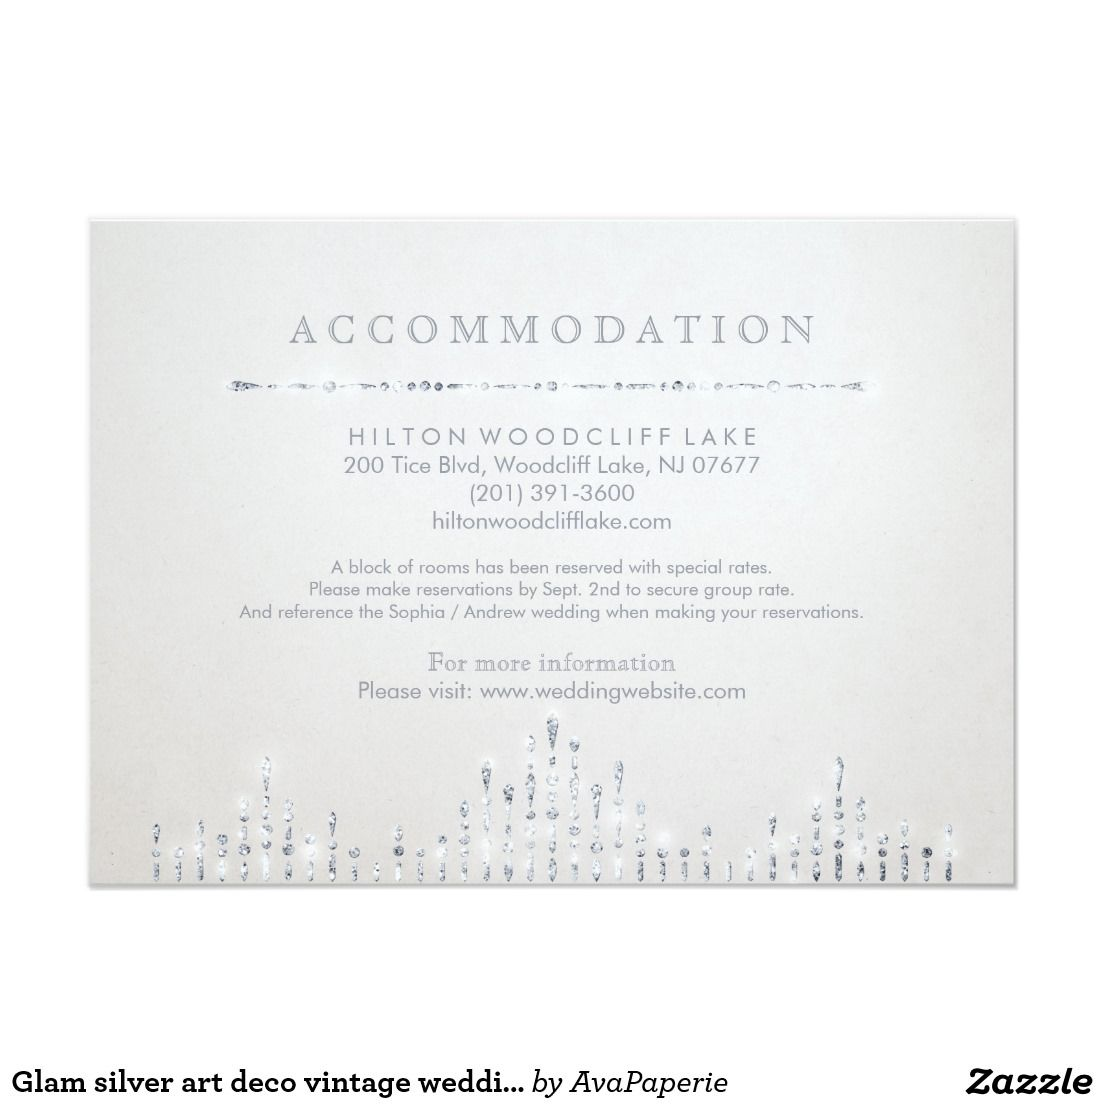 Glam silver art deco vintage wedding accommodation